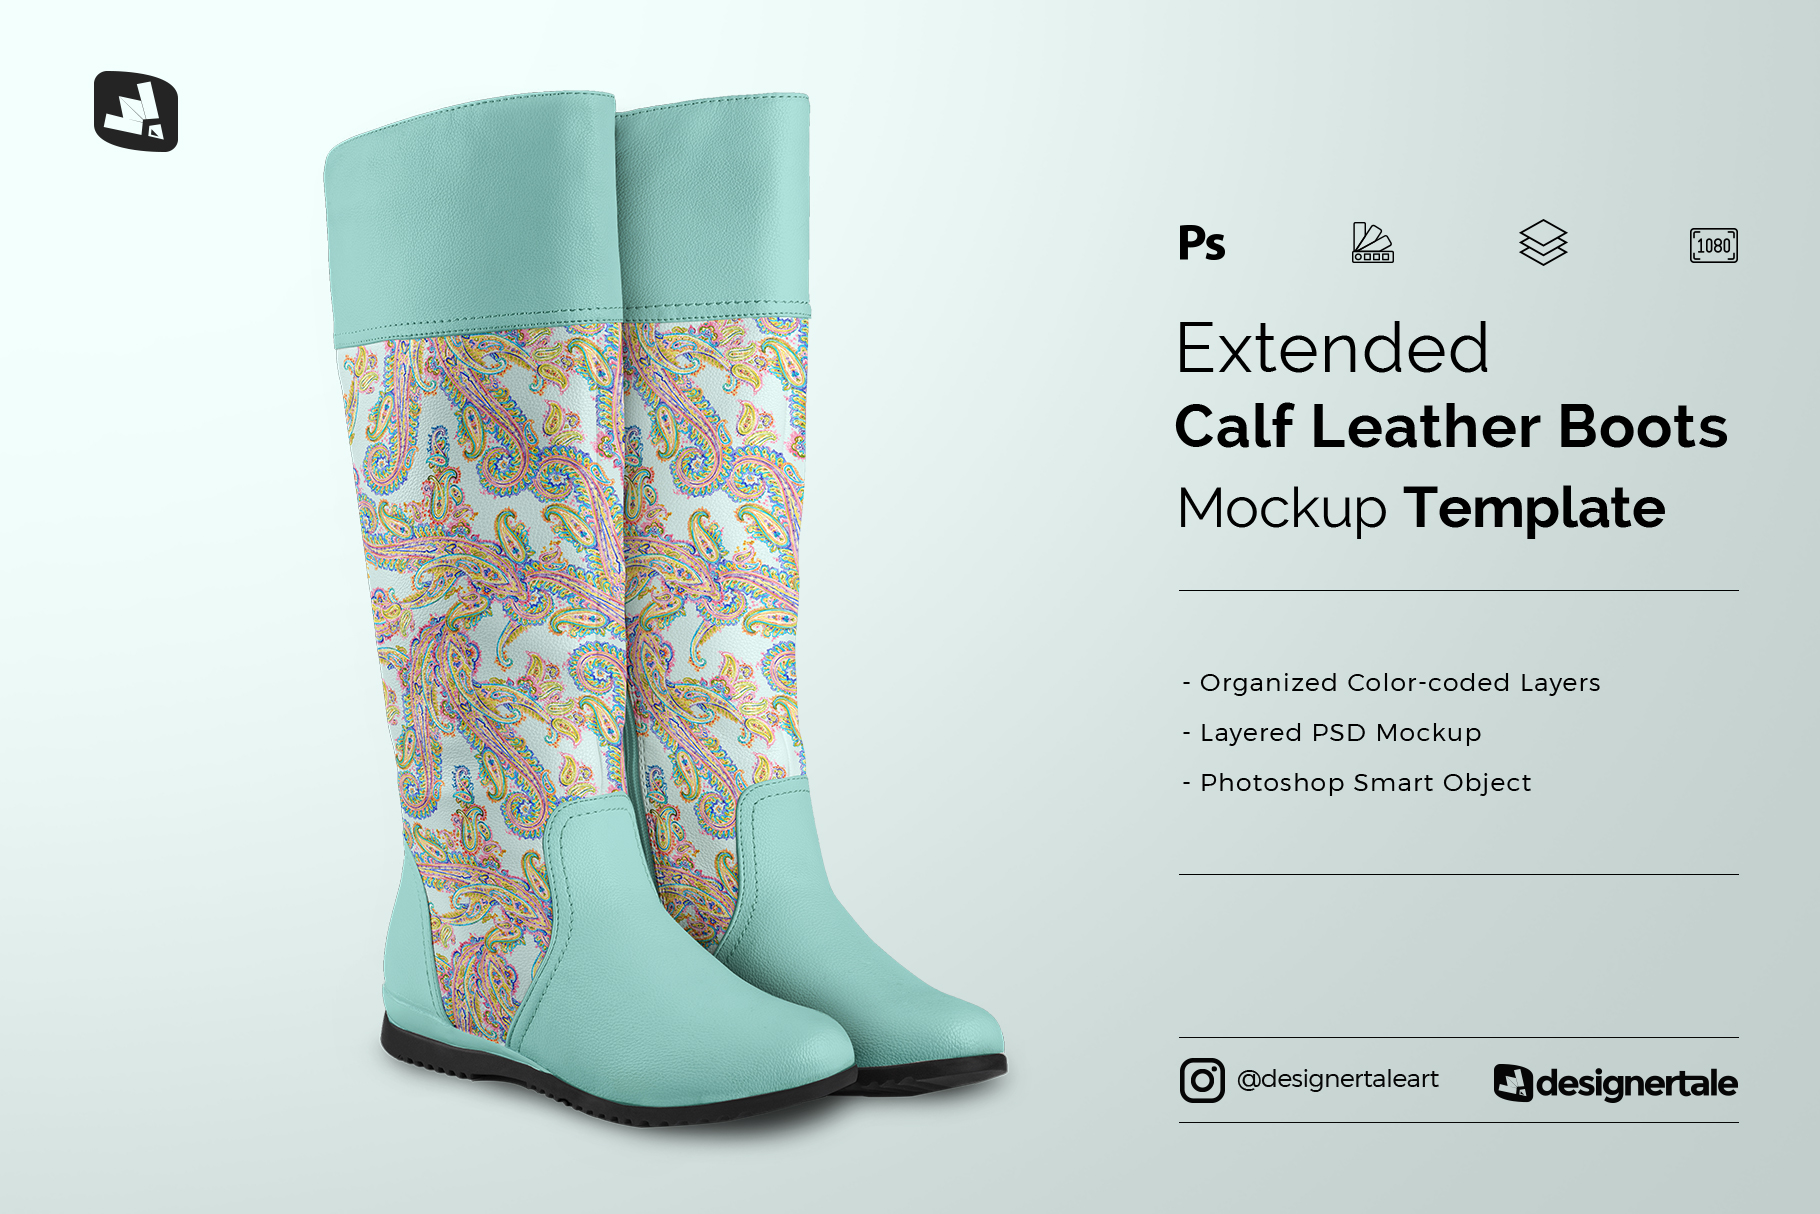 extended calf leather boots mockup